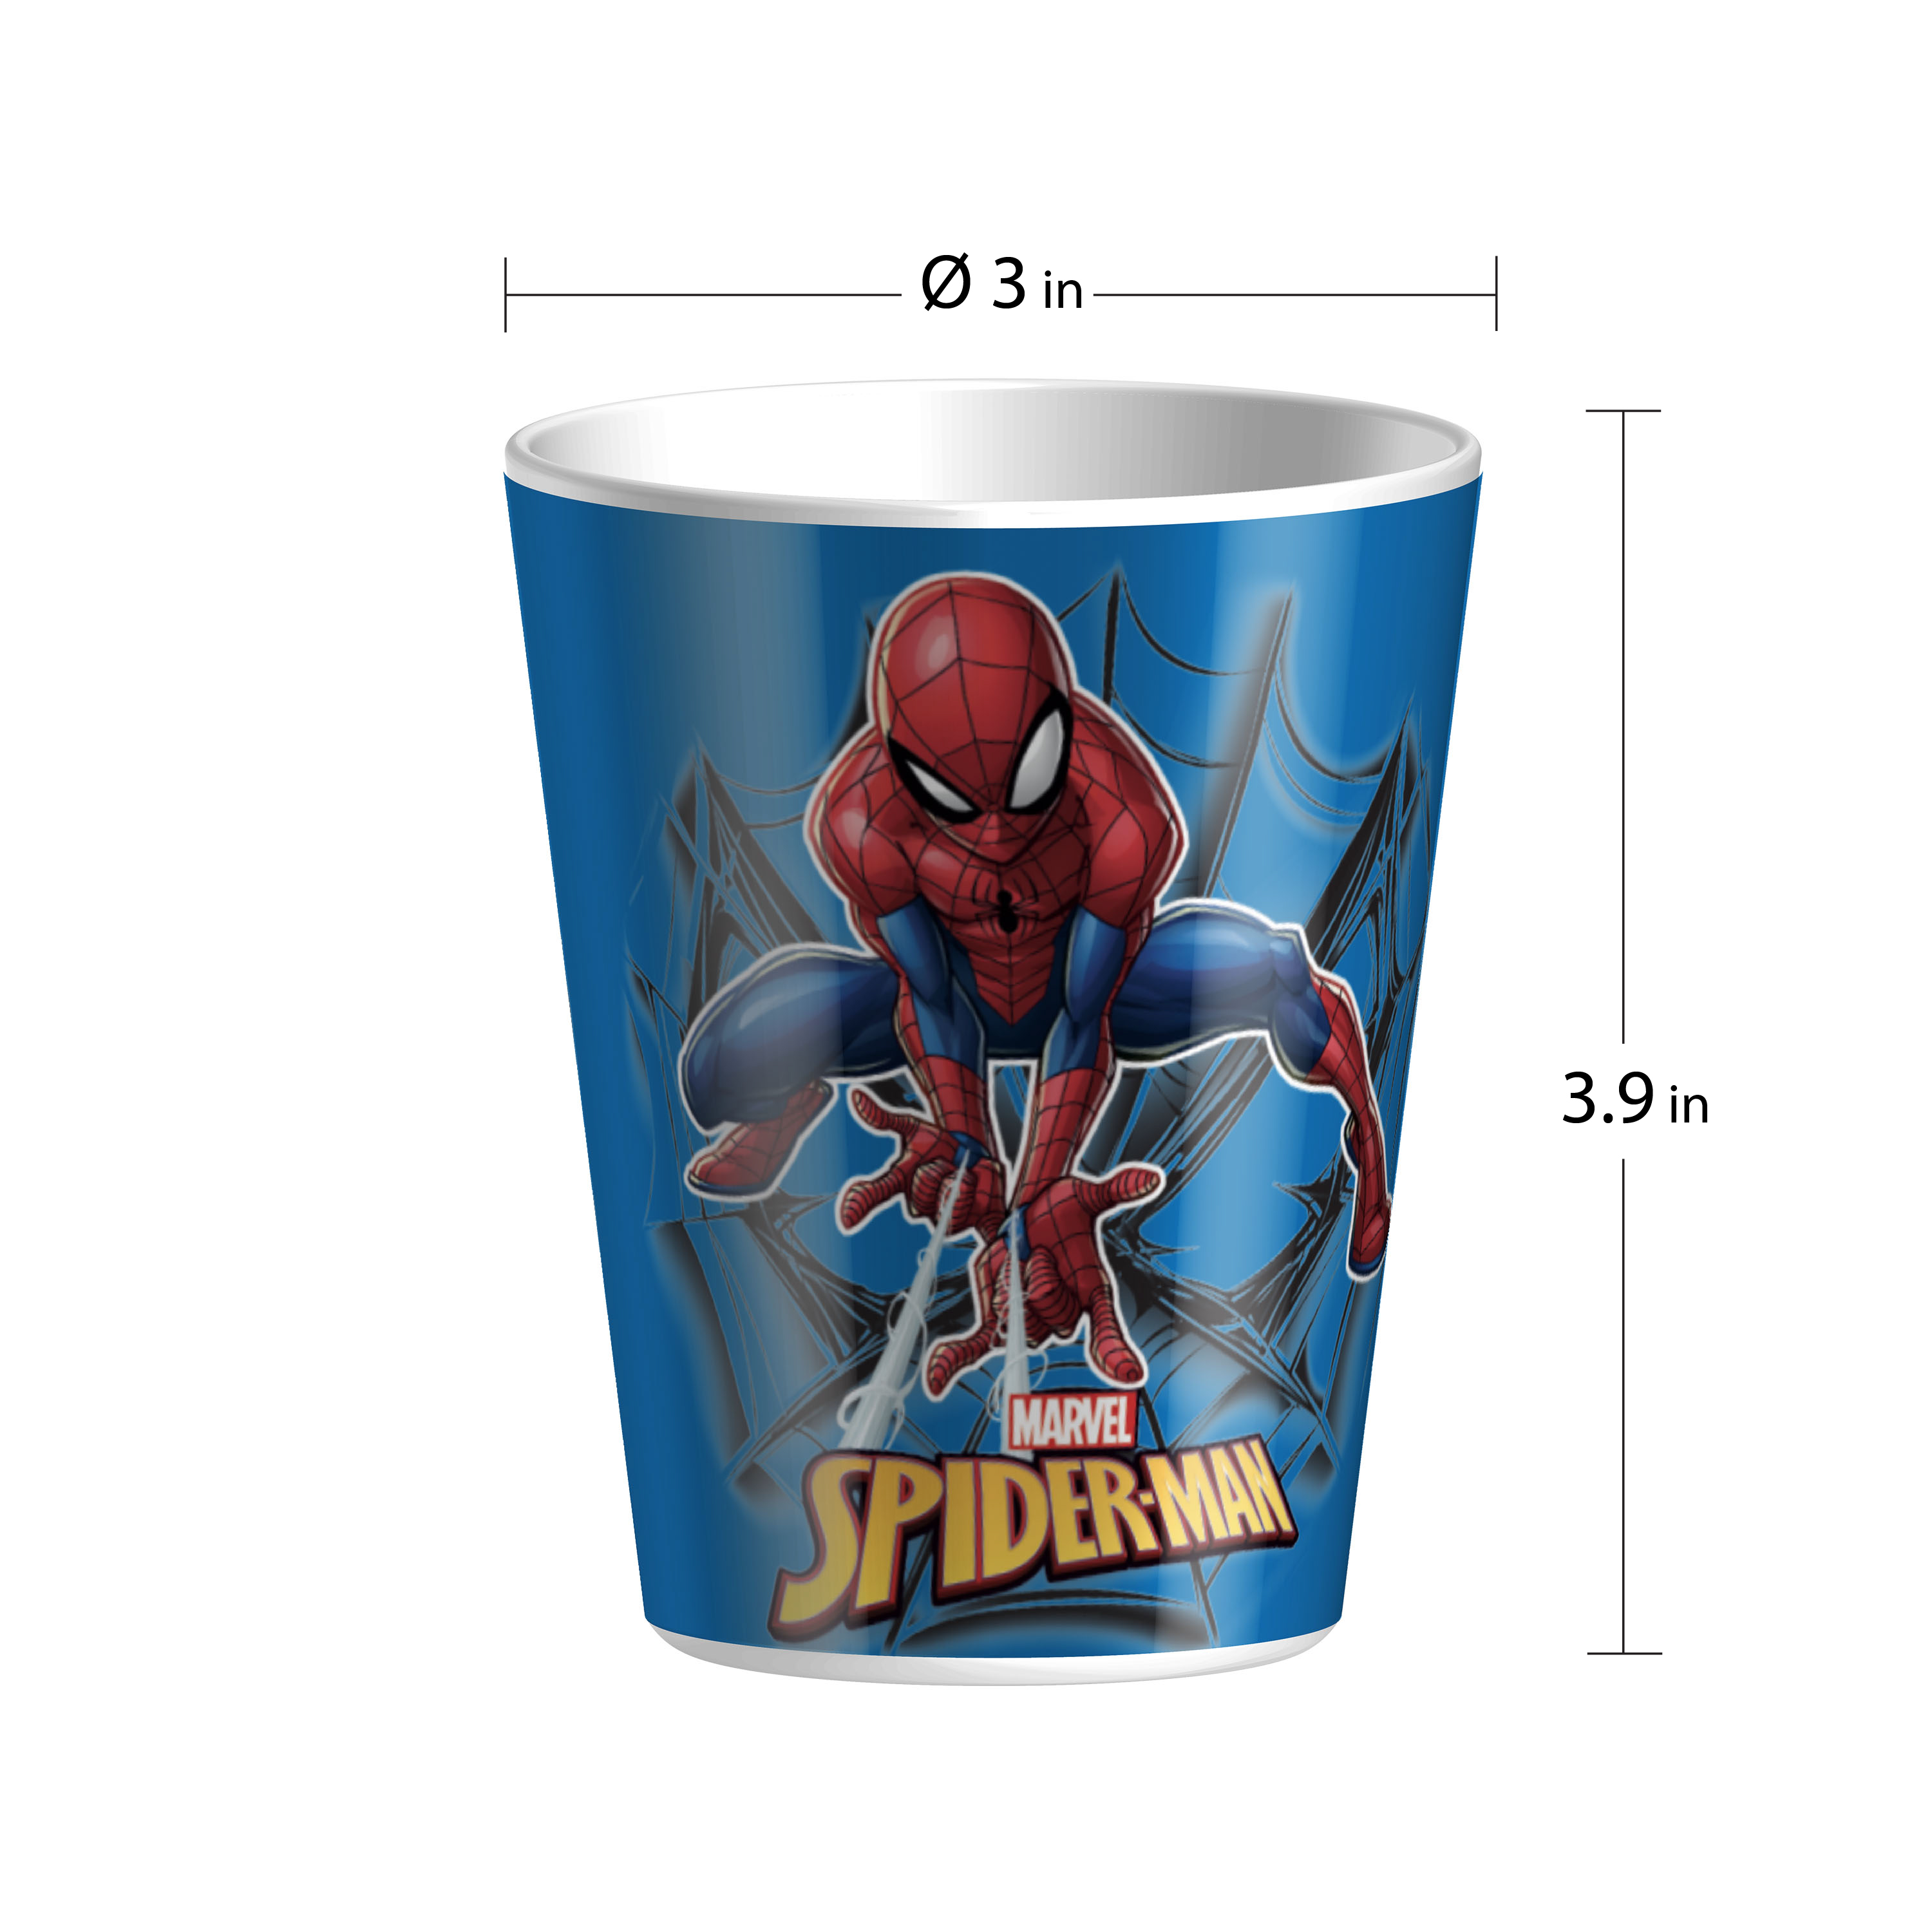 Marvel Kid's Dinnerware Set, Spider-Man, 3-piece set slideshow image 2